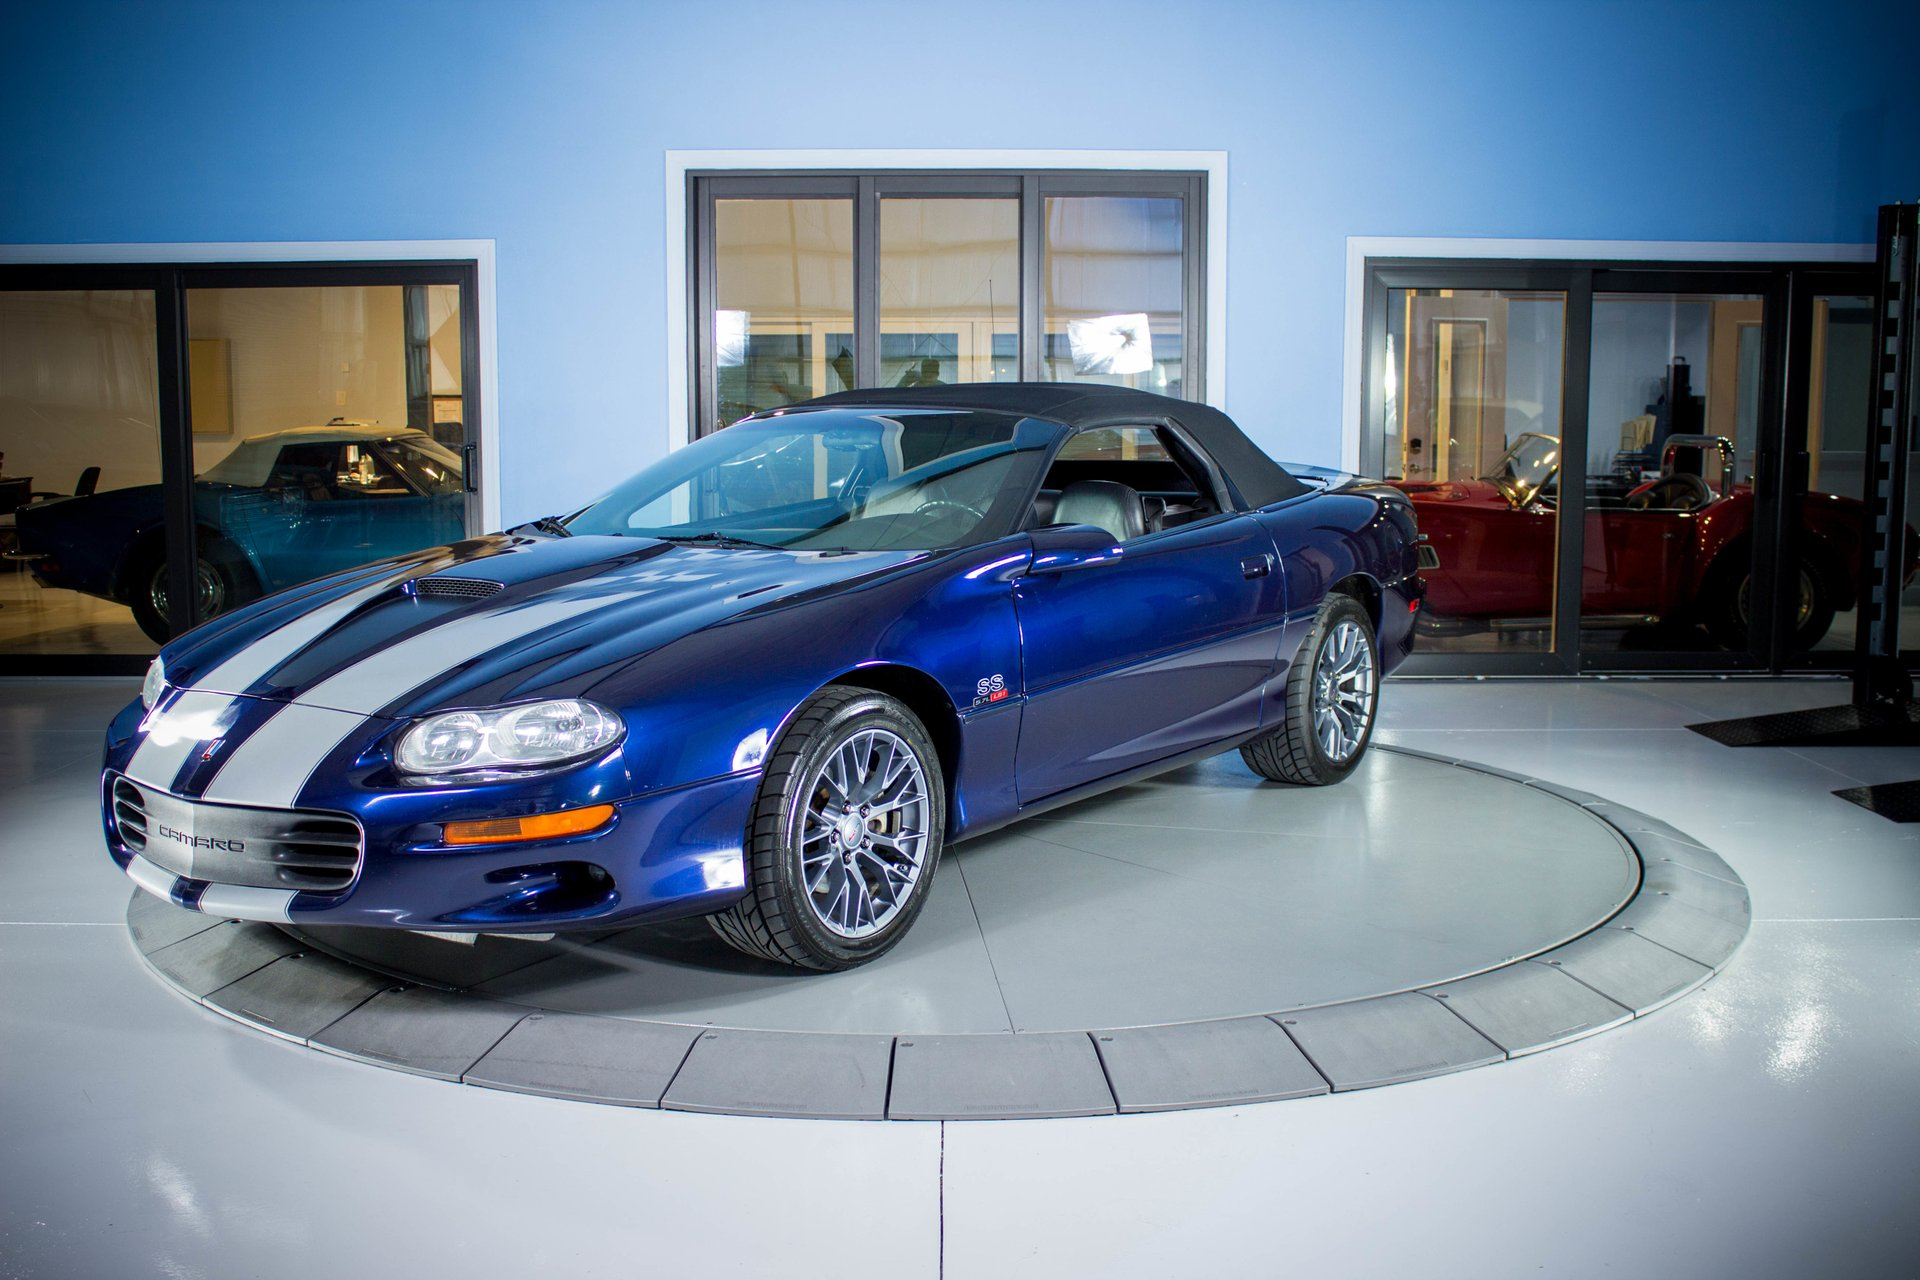 2002 chevrolet camaro ss slp 35th anniversary edition